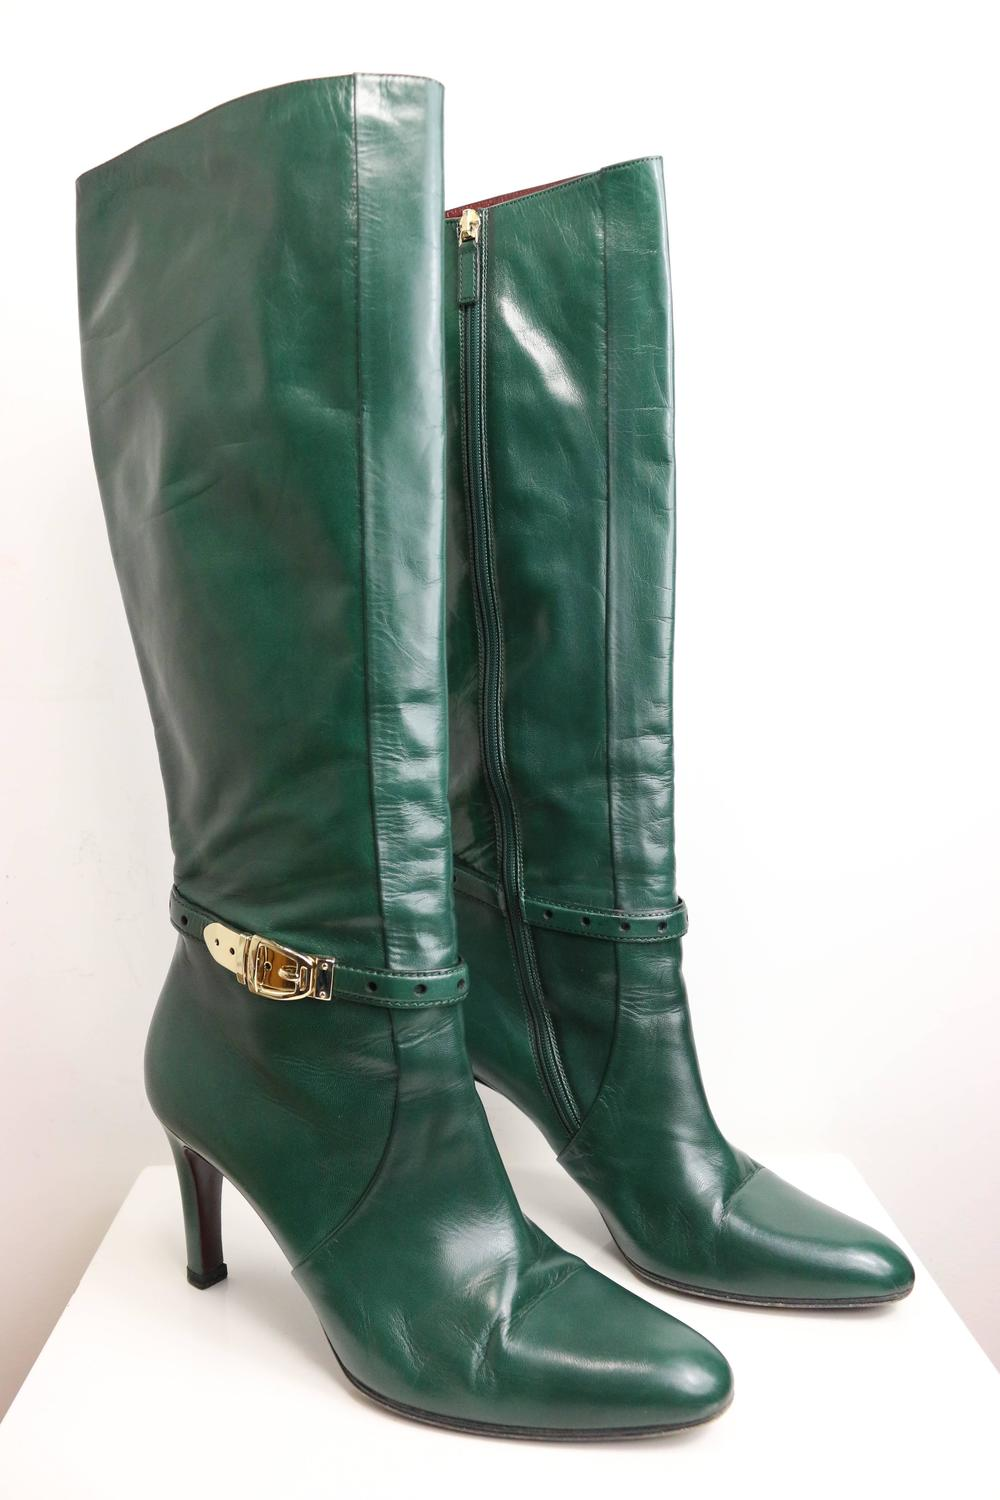 Gucci Green Leather Boots For Sale At 1stdibs